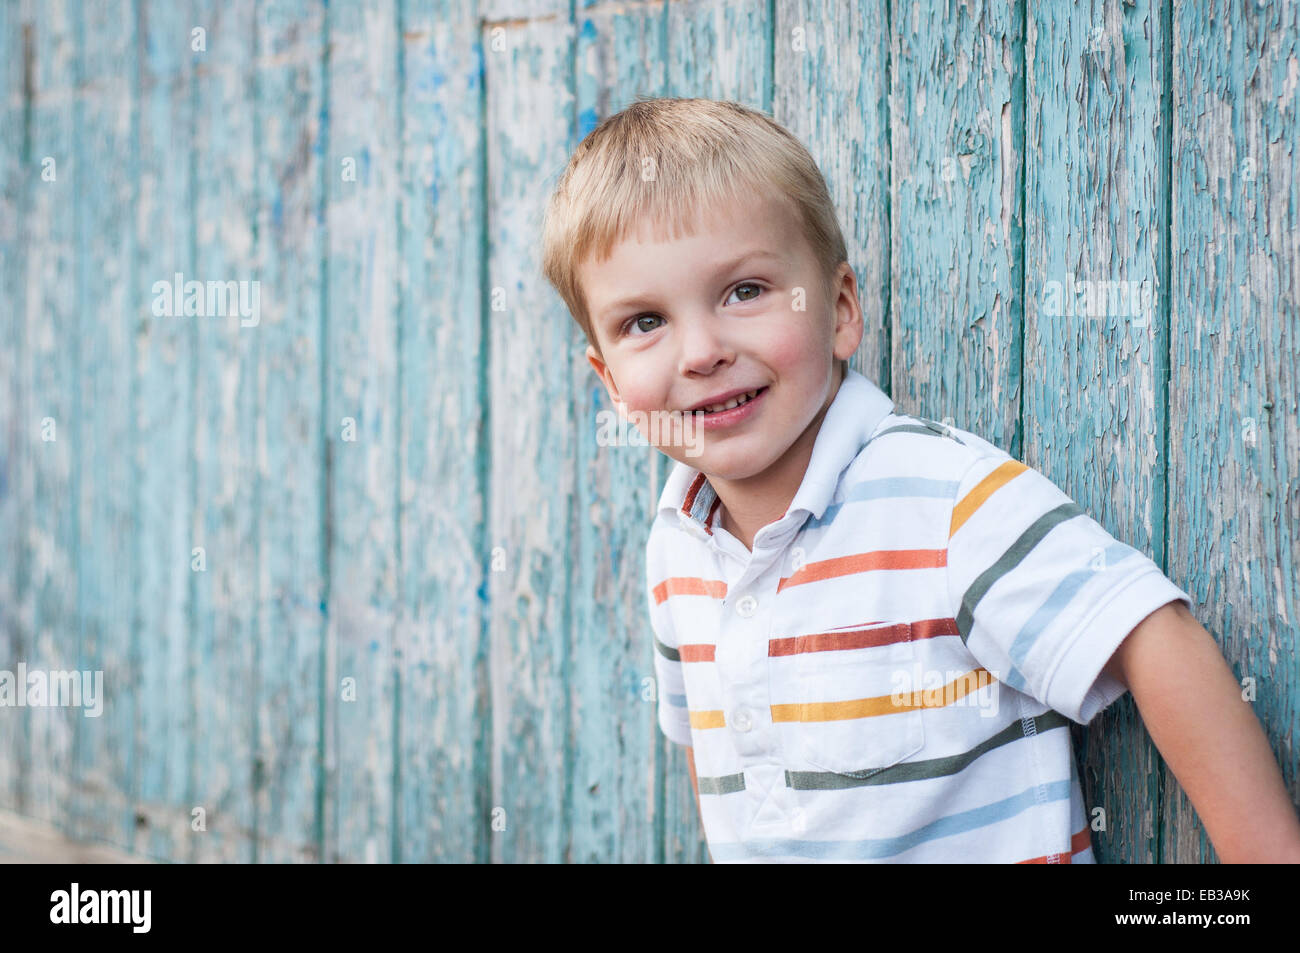 Portrait of boy leaning against  wooden wall - Stock Image